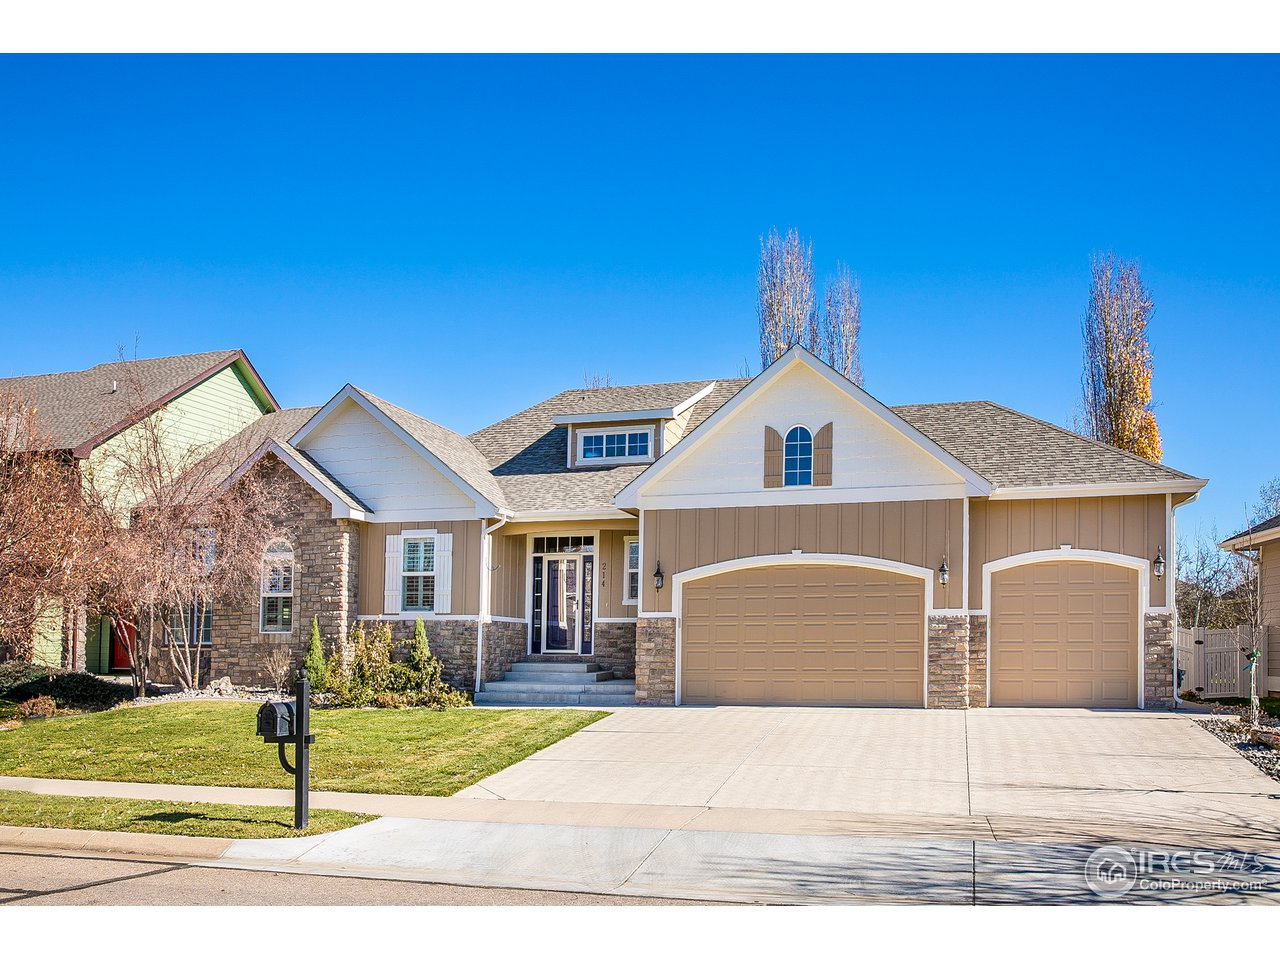 214 N 53rd Ave Ct, Greeley CO 80634